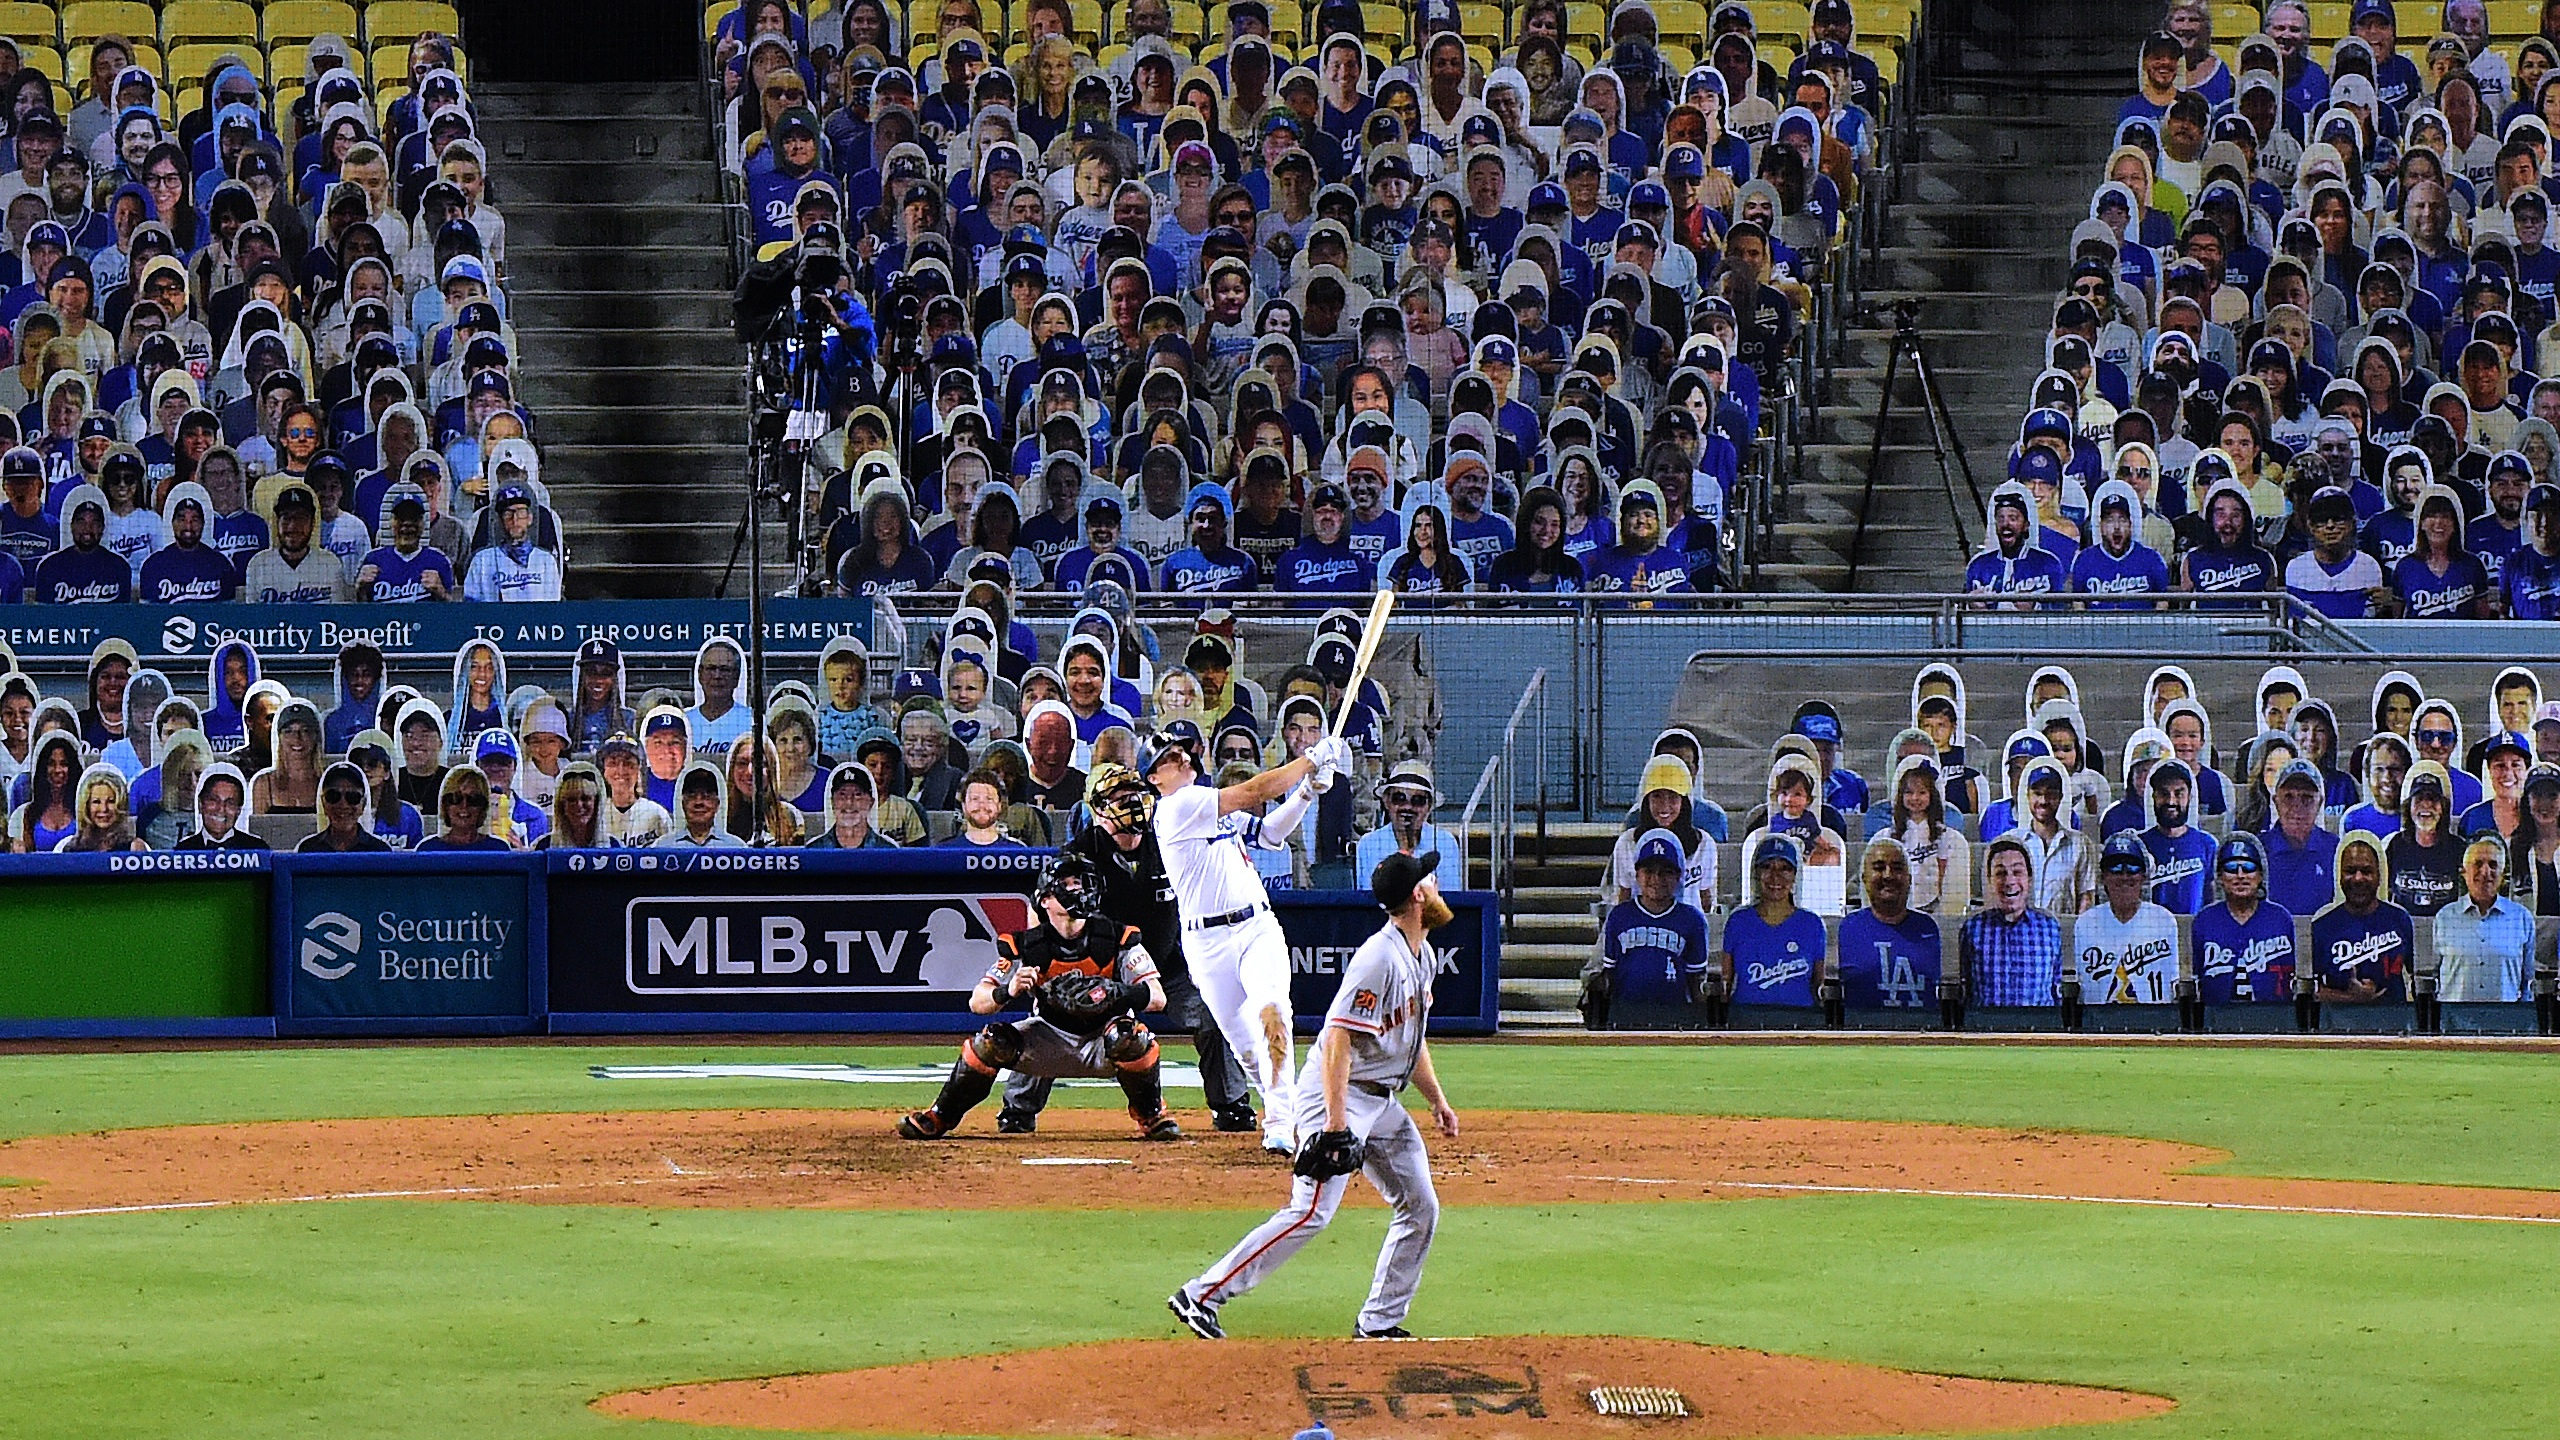 Enrique Hernandez hits a two run homerun off of Conner Menez to take an 8-1 lead during the eighth inning, on MLB Opening Day at Dodger Stadium on July 23, 2020. (Harry How/Getty Images)